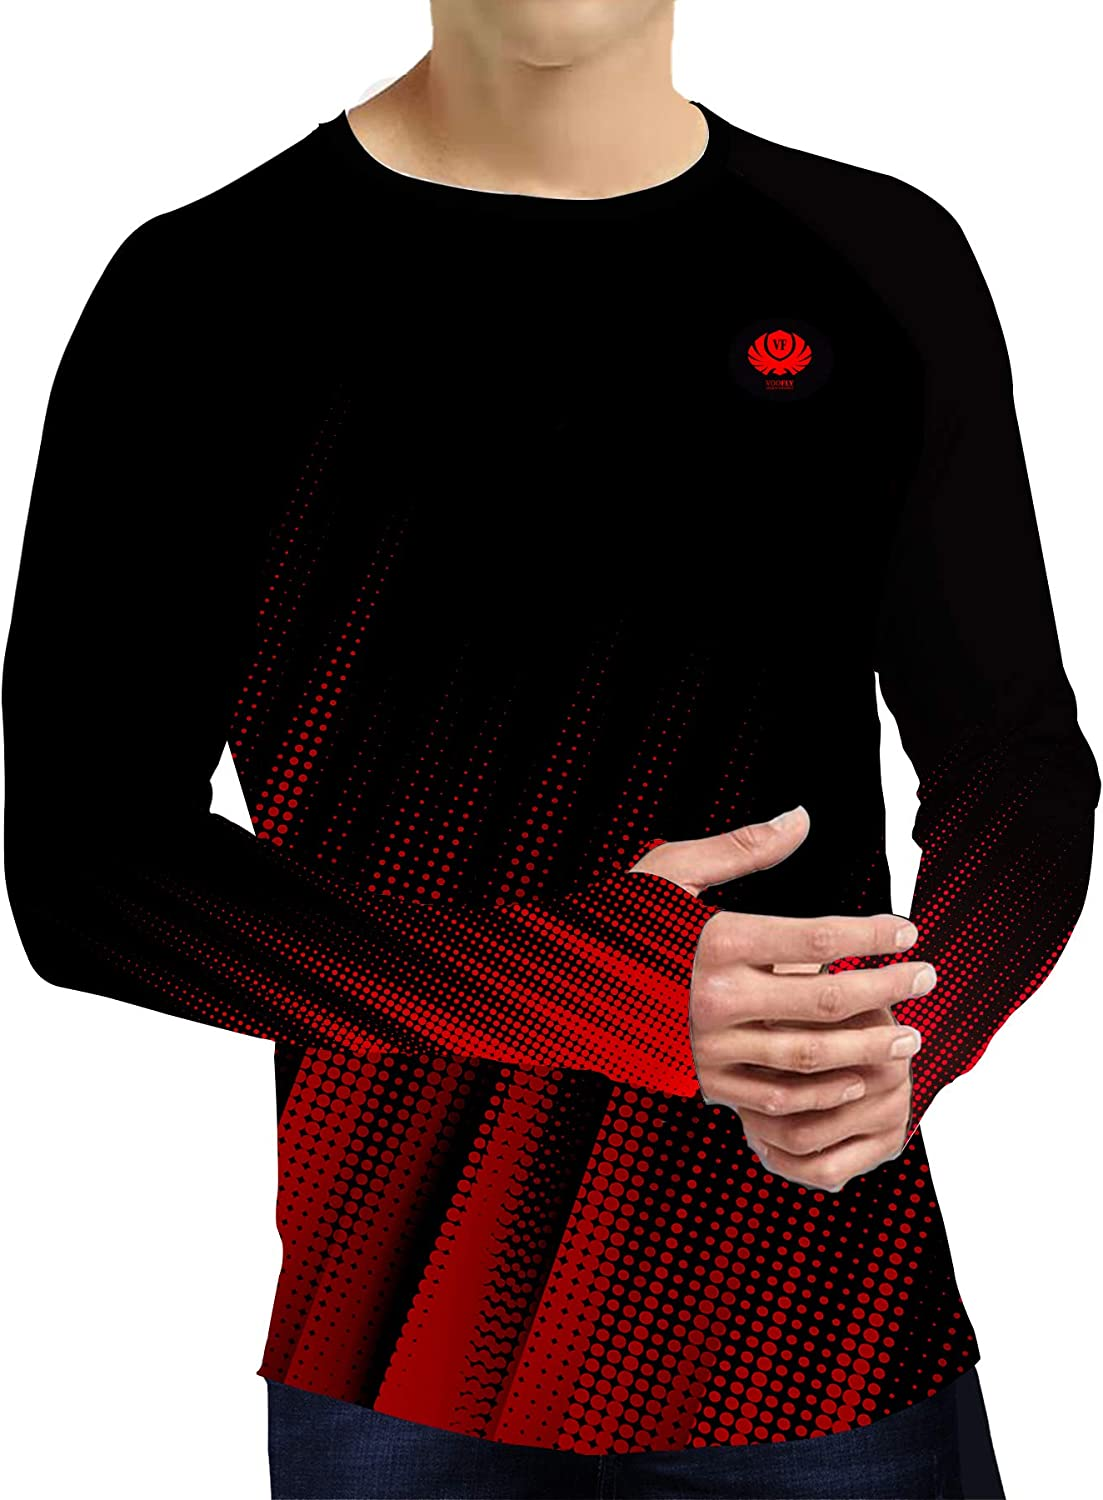 voofly Men's Long Sleeve Now on sale T-Shirt Protection Shirts Hiking Sun Boston Mall UP